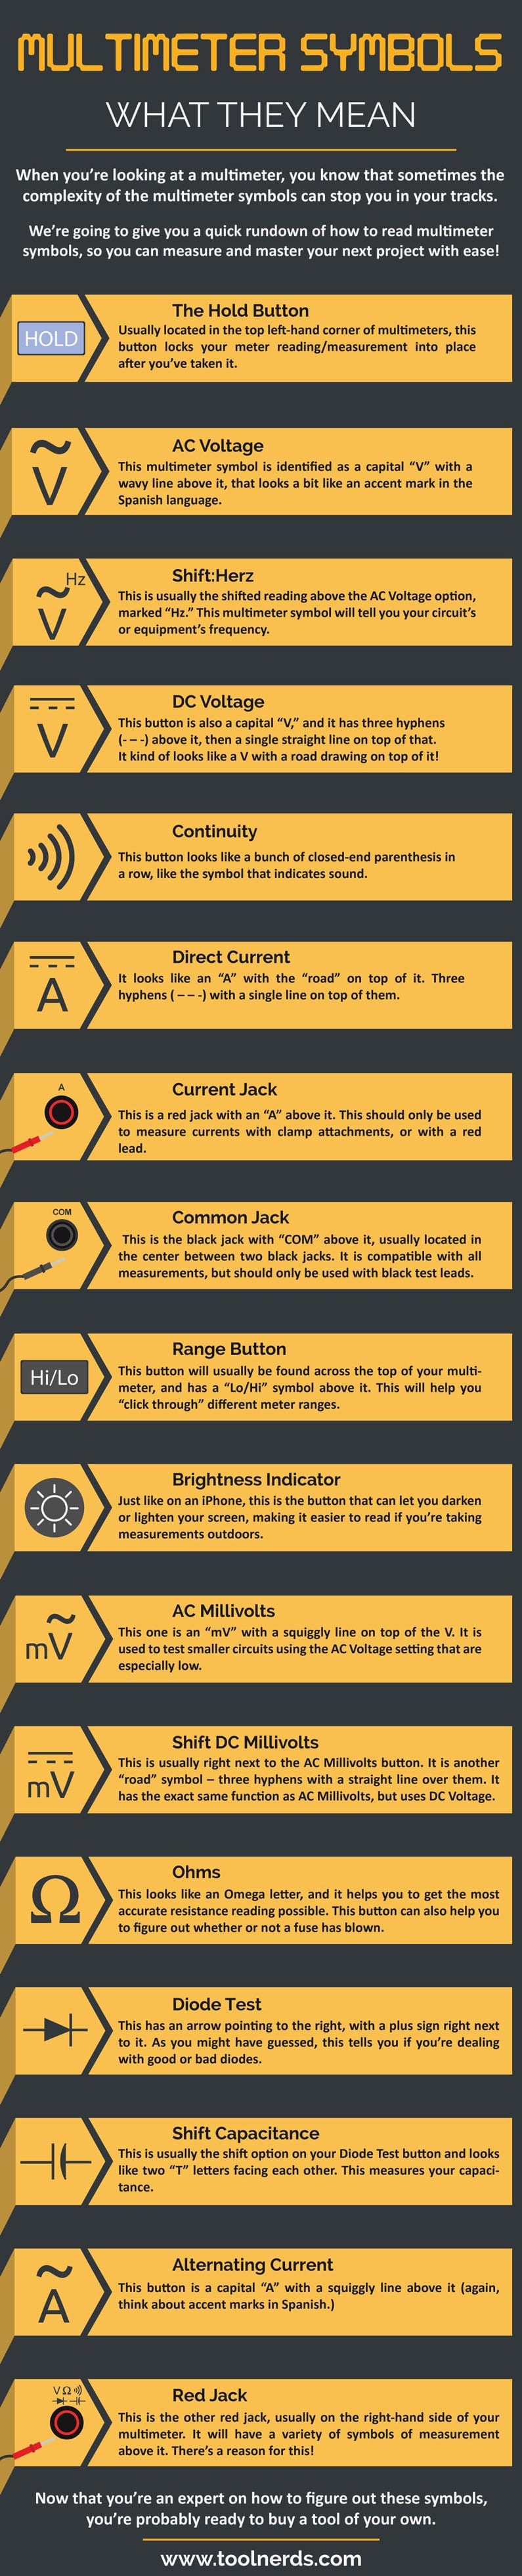 infographic-how-to-read-multimeter-symbols